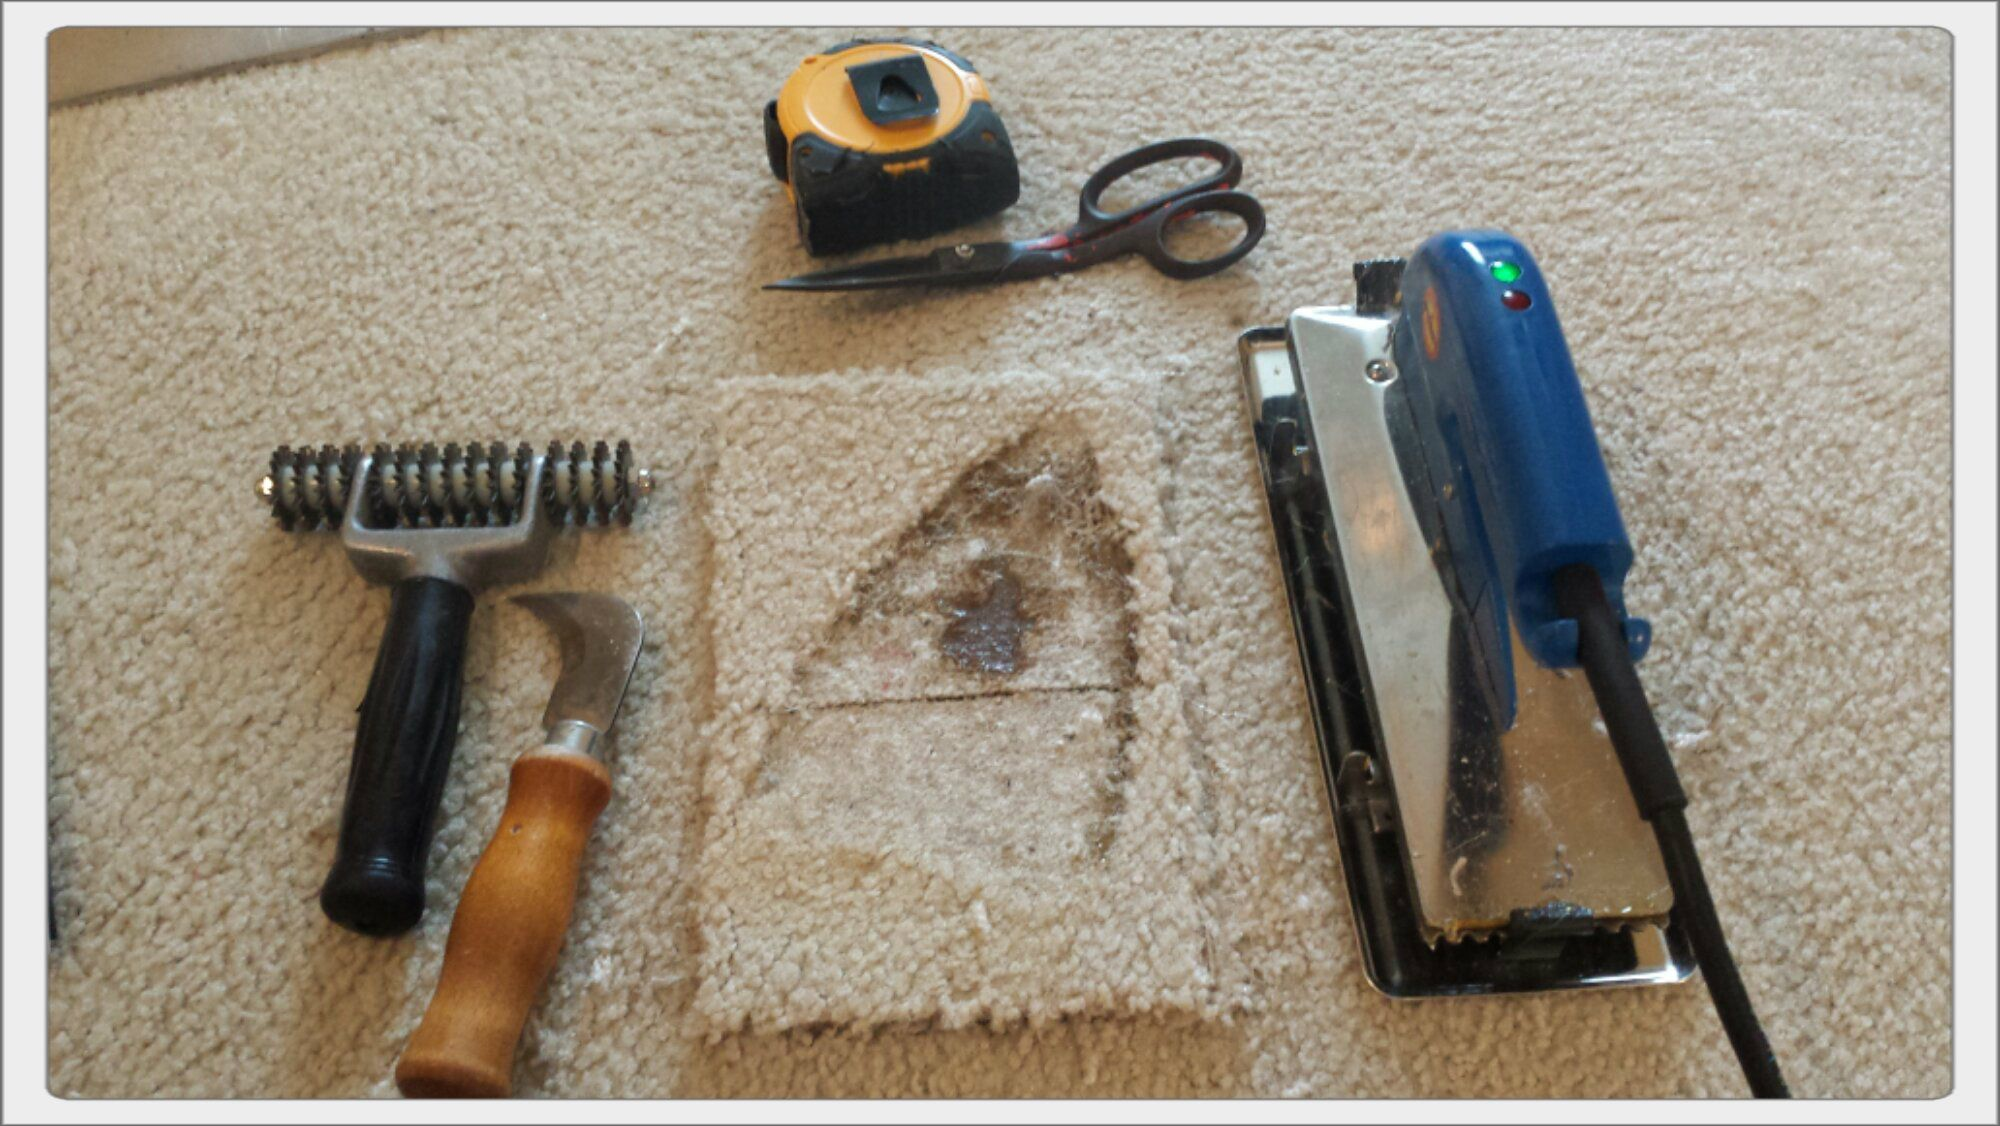 Perth Carpet Master the Friendly Professional Carpet Repair and restoration service Provider Giving Good Quality Carpet Patching/repair, carpet re stretching, carpet cleaning and many more  Come today @ 3B Clarke way, Bassendean, Perth, WA